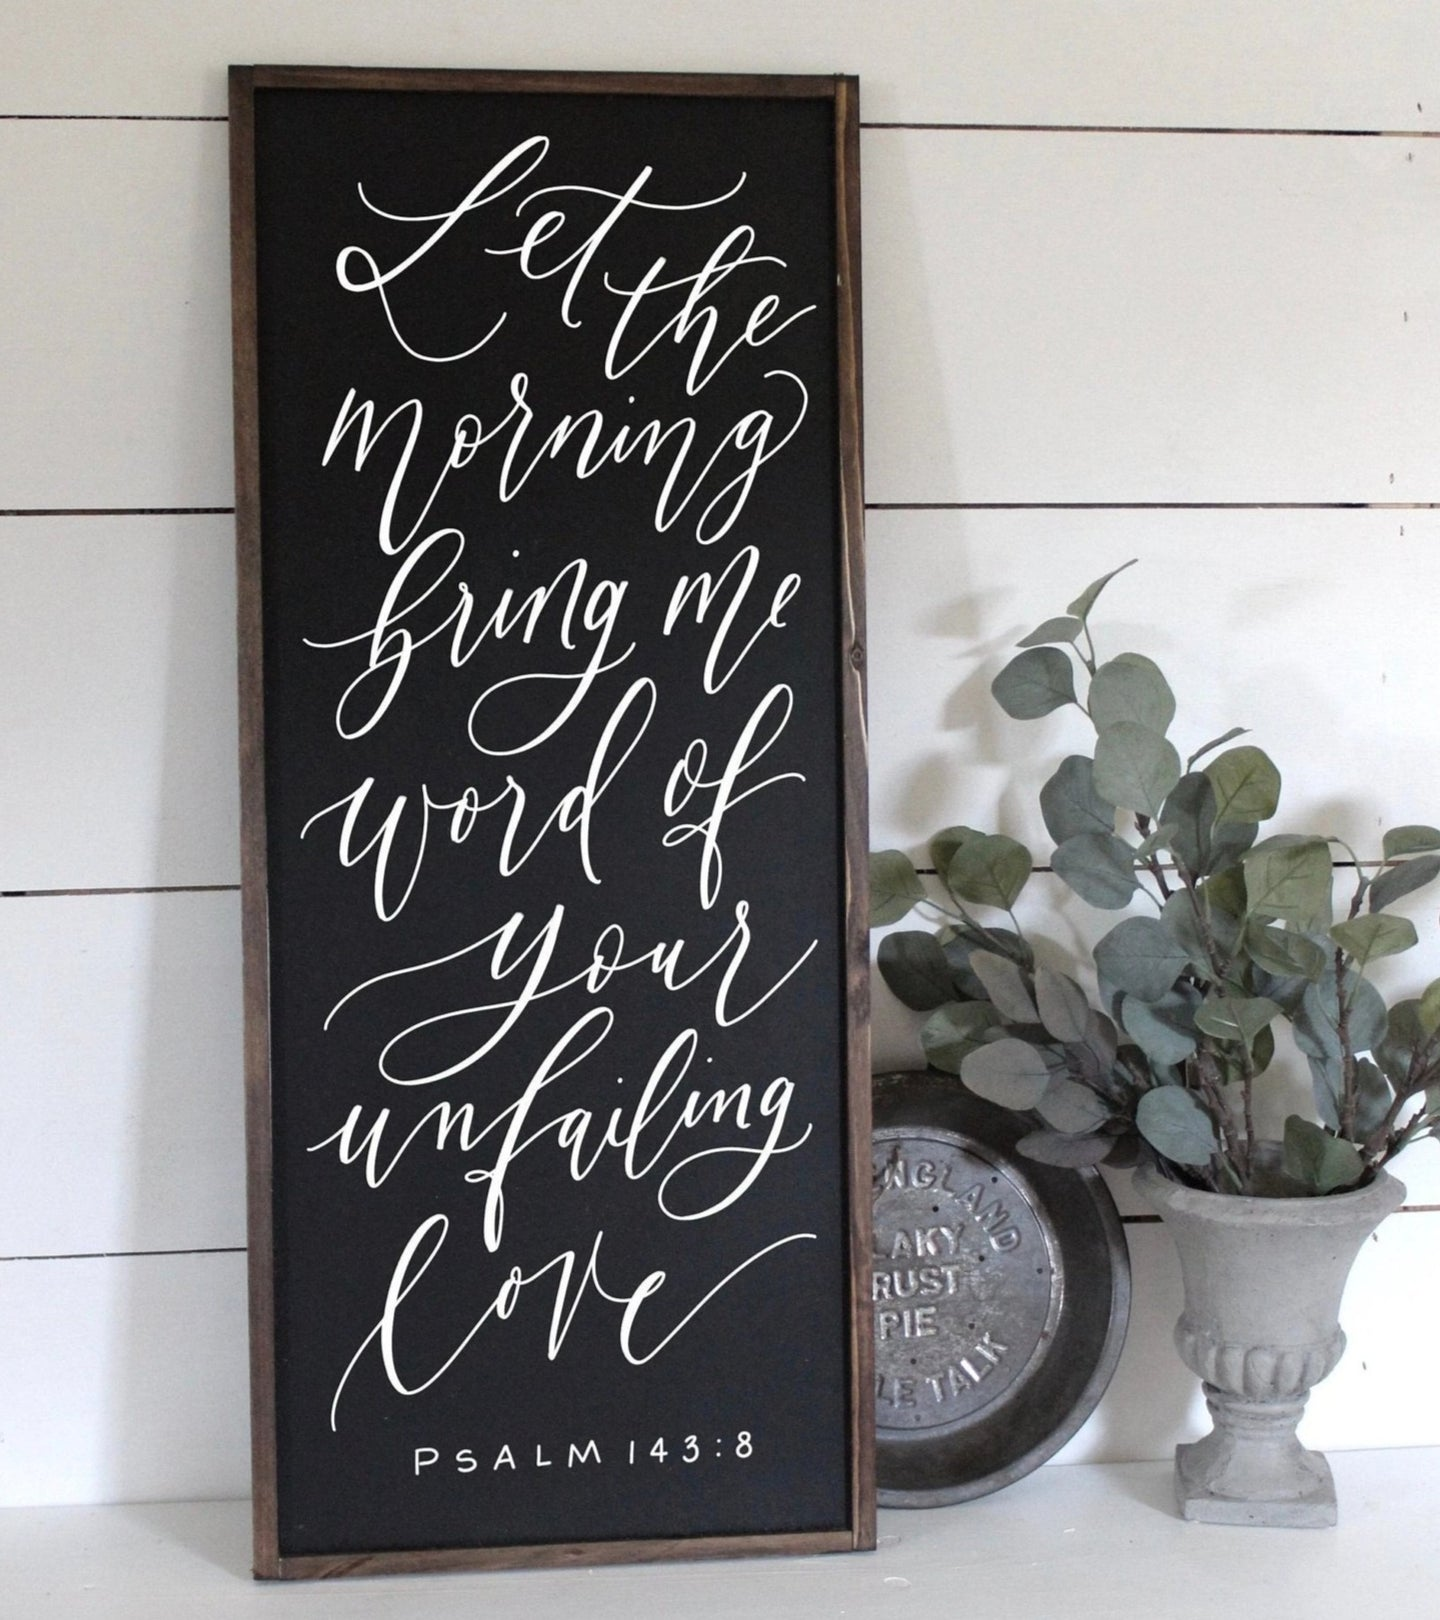 Let The Morning Bring Me Word Of Your Unfailing Love PSALM 143:8 Wood Framed Sign